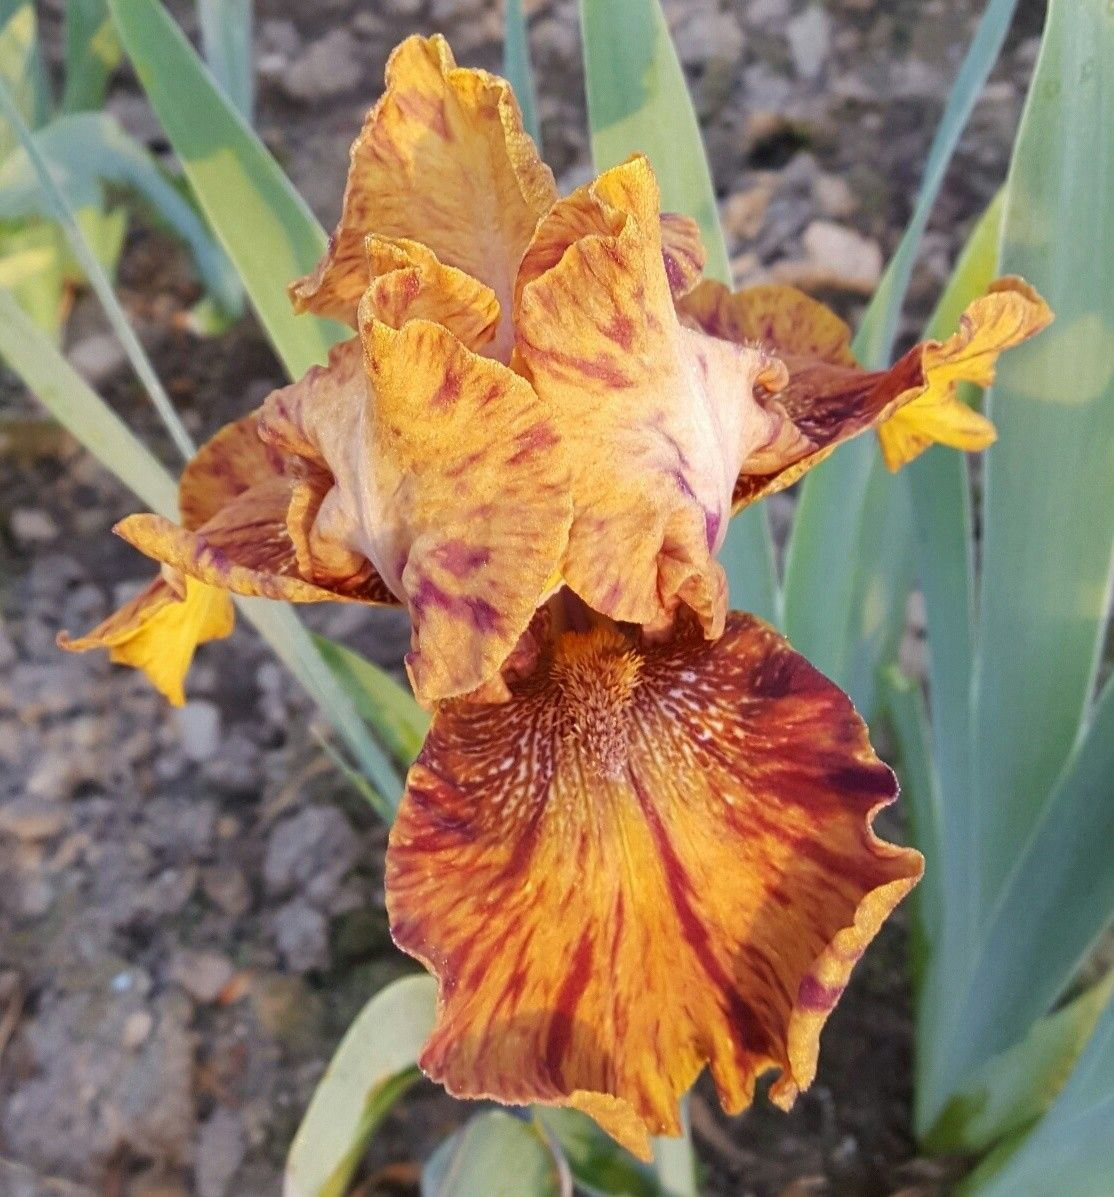 Hot Dogs And Mustard Day Lilies Hardy Plants Orange Flowers